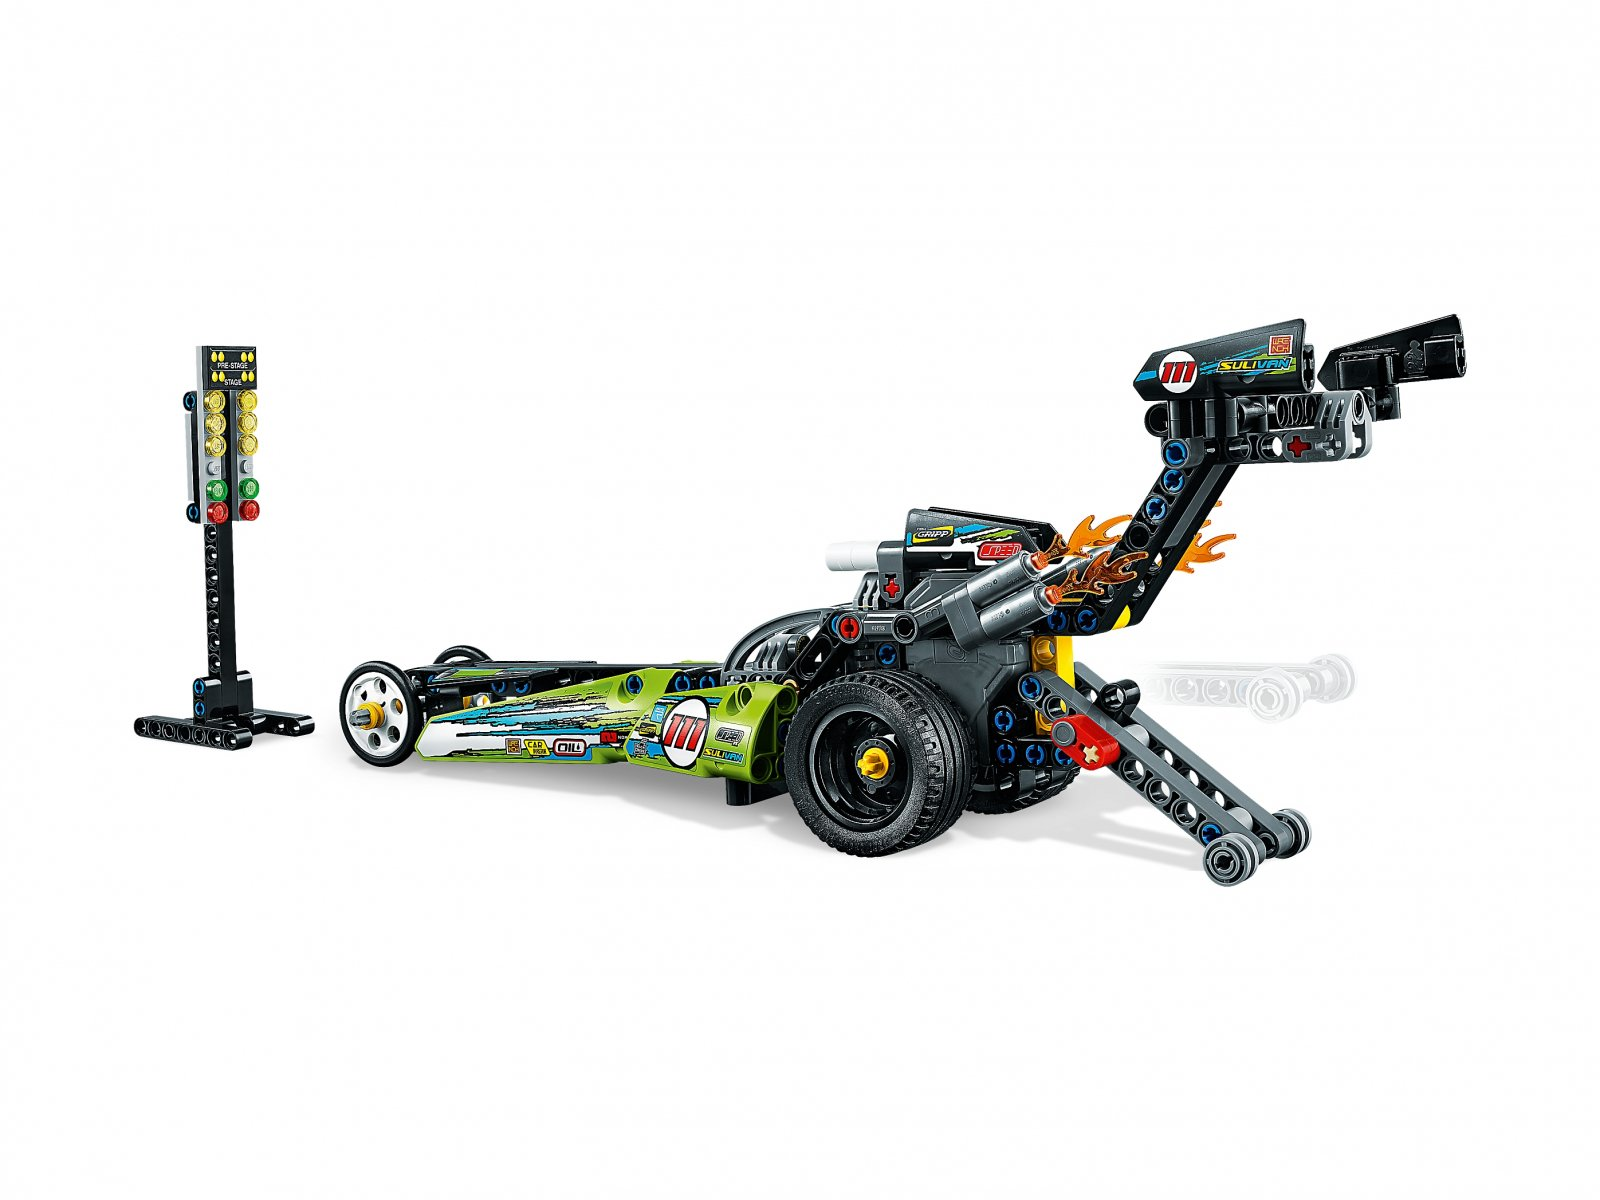 LEGO 42103 Technic Dragster